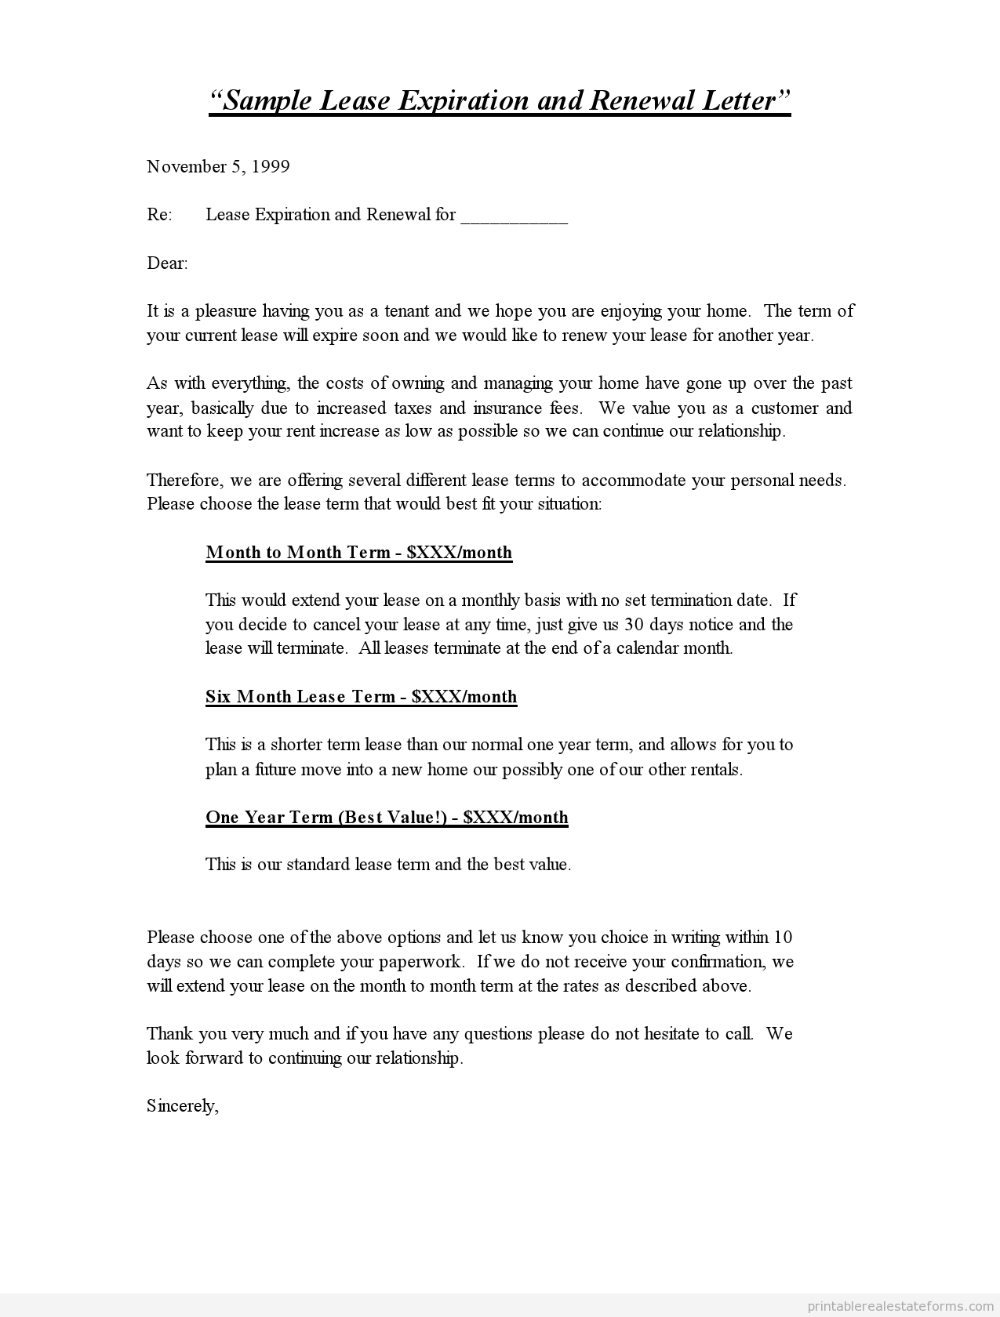 Printable Sample Lease Expiration And Renewal Letter Standard